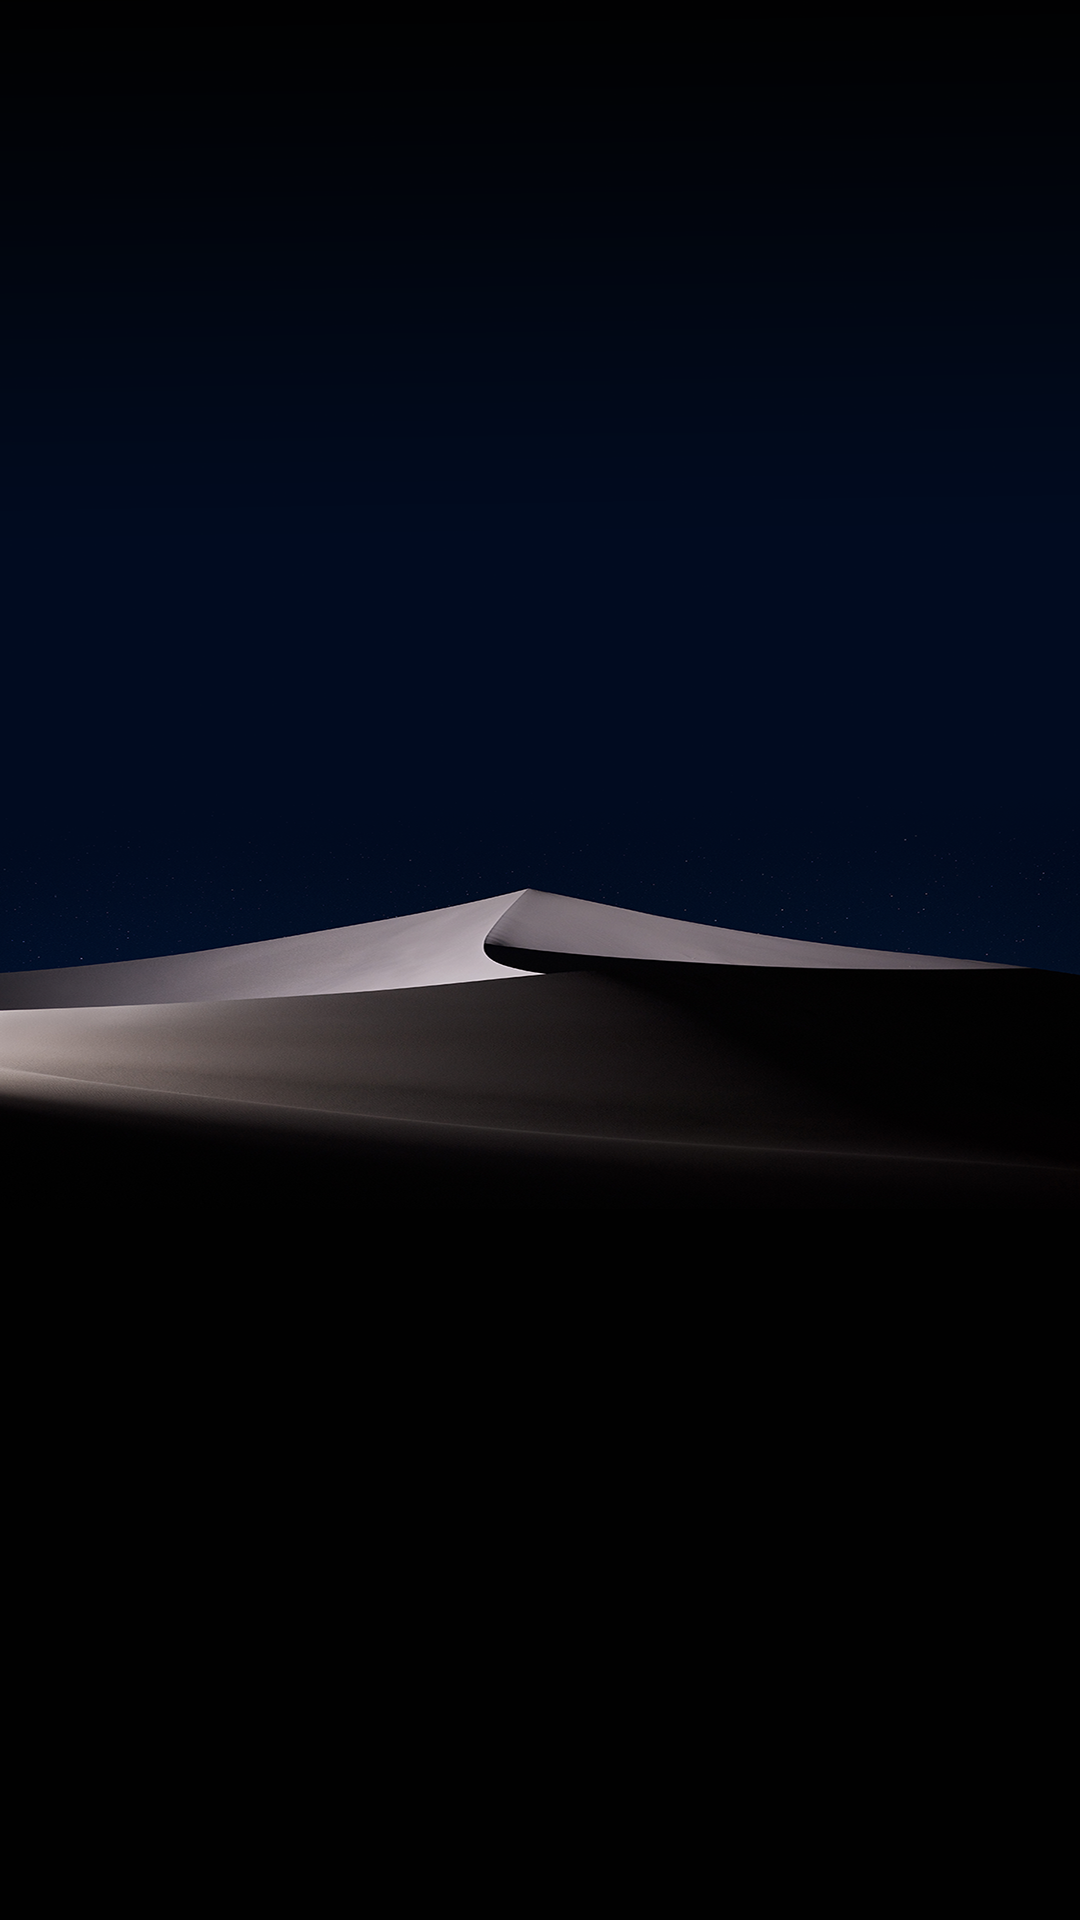 Every MacOS Mojave Wallpaper For IPhone